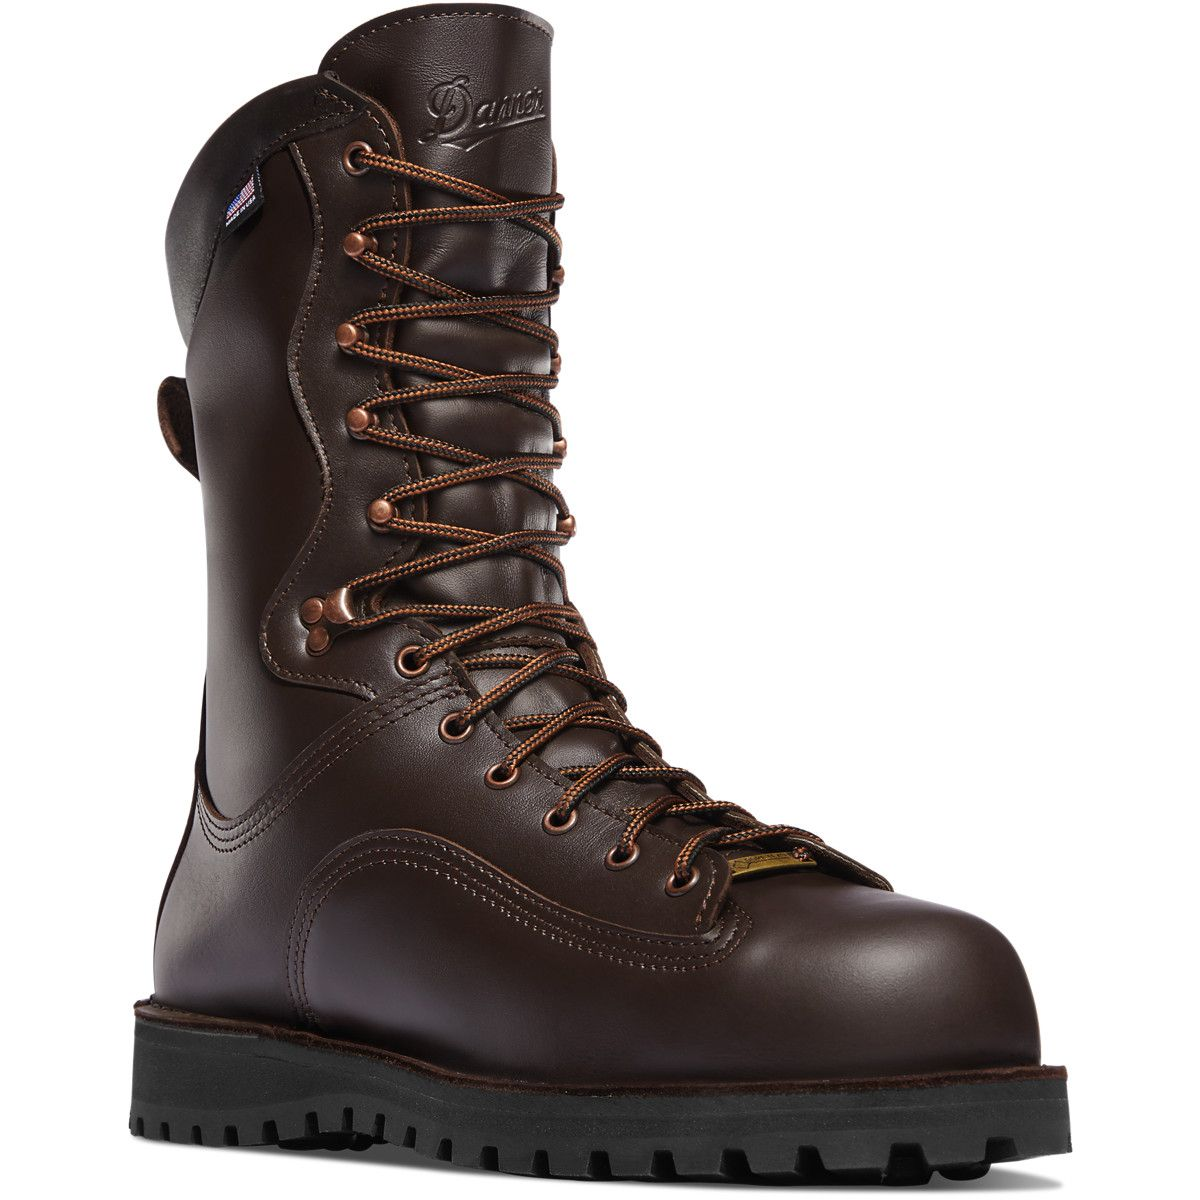 "Trophy 10"" Brown 600G Boots, Safety toe boots, Hunting boots"